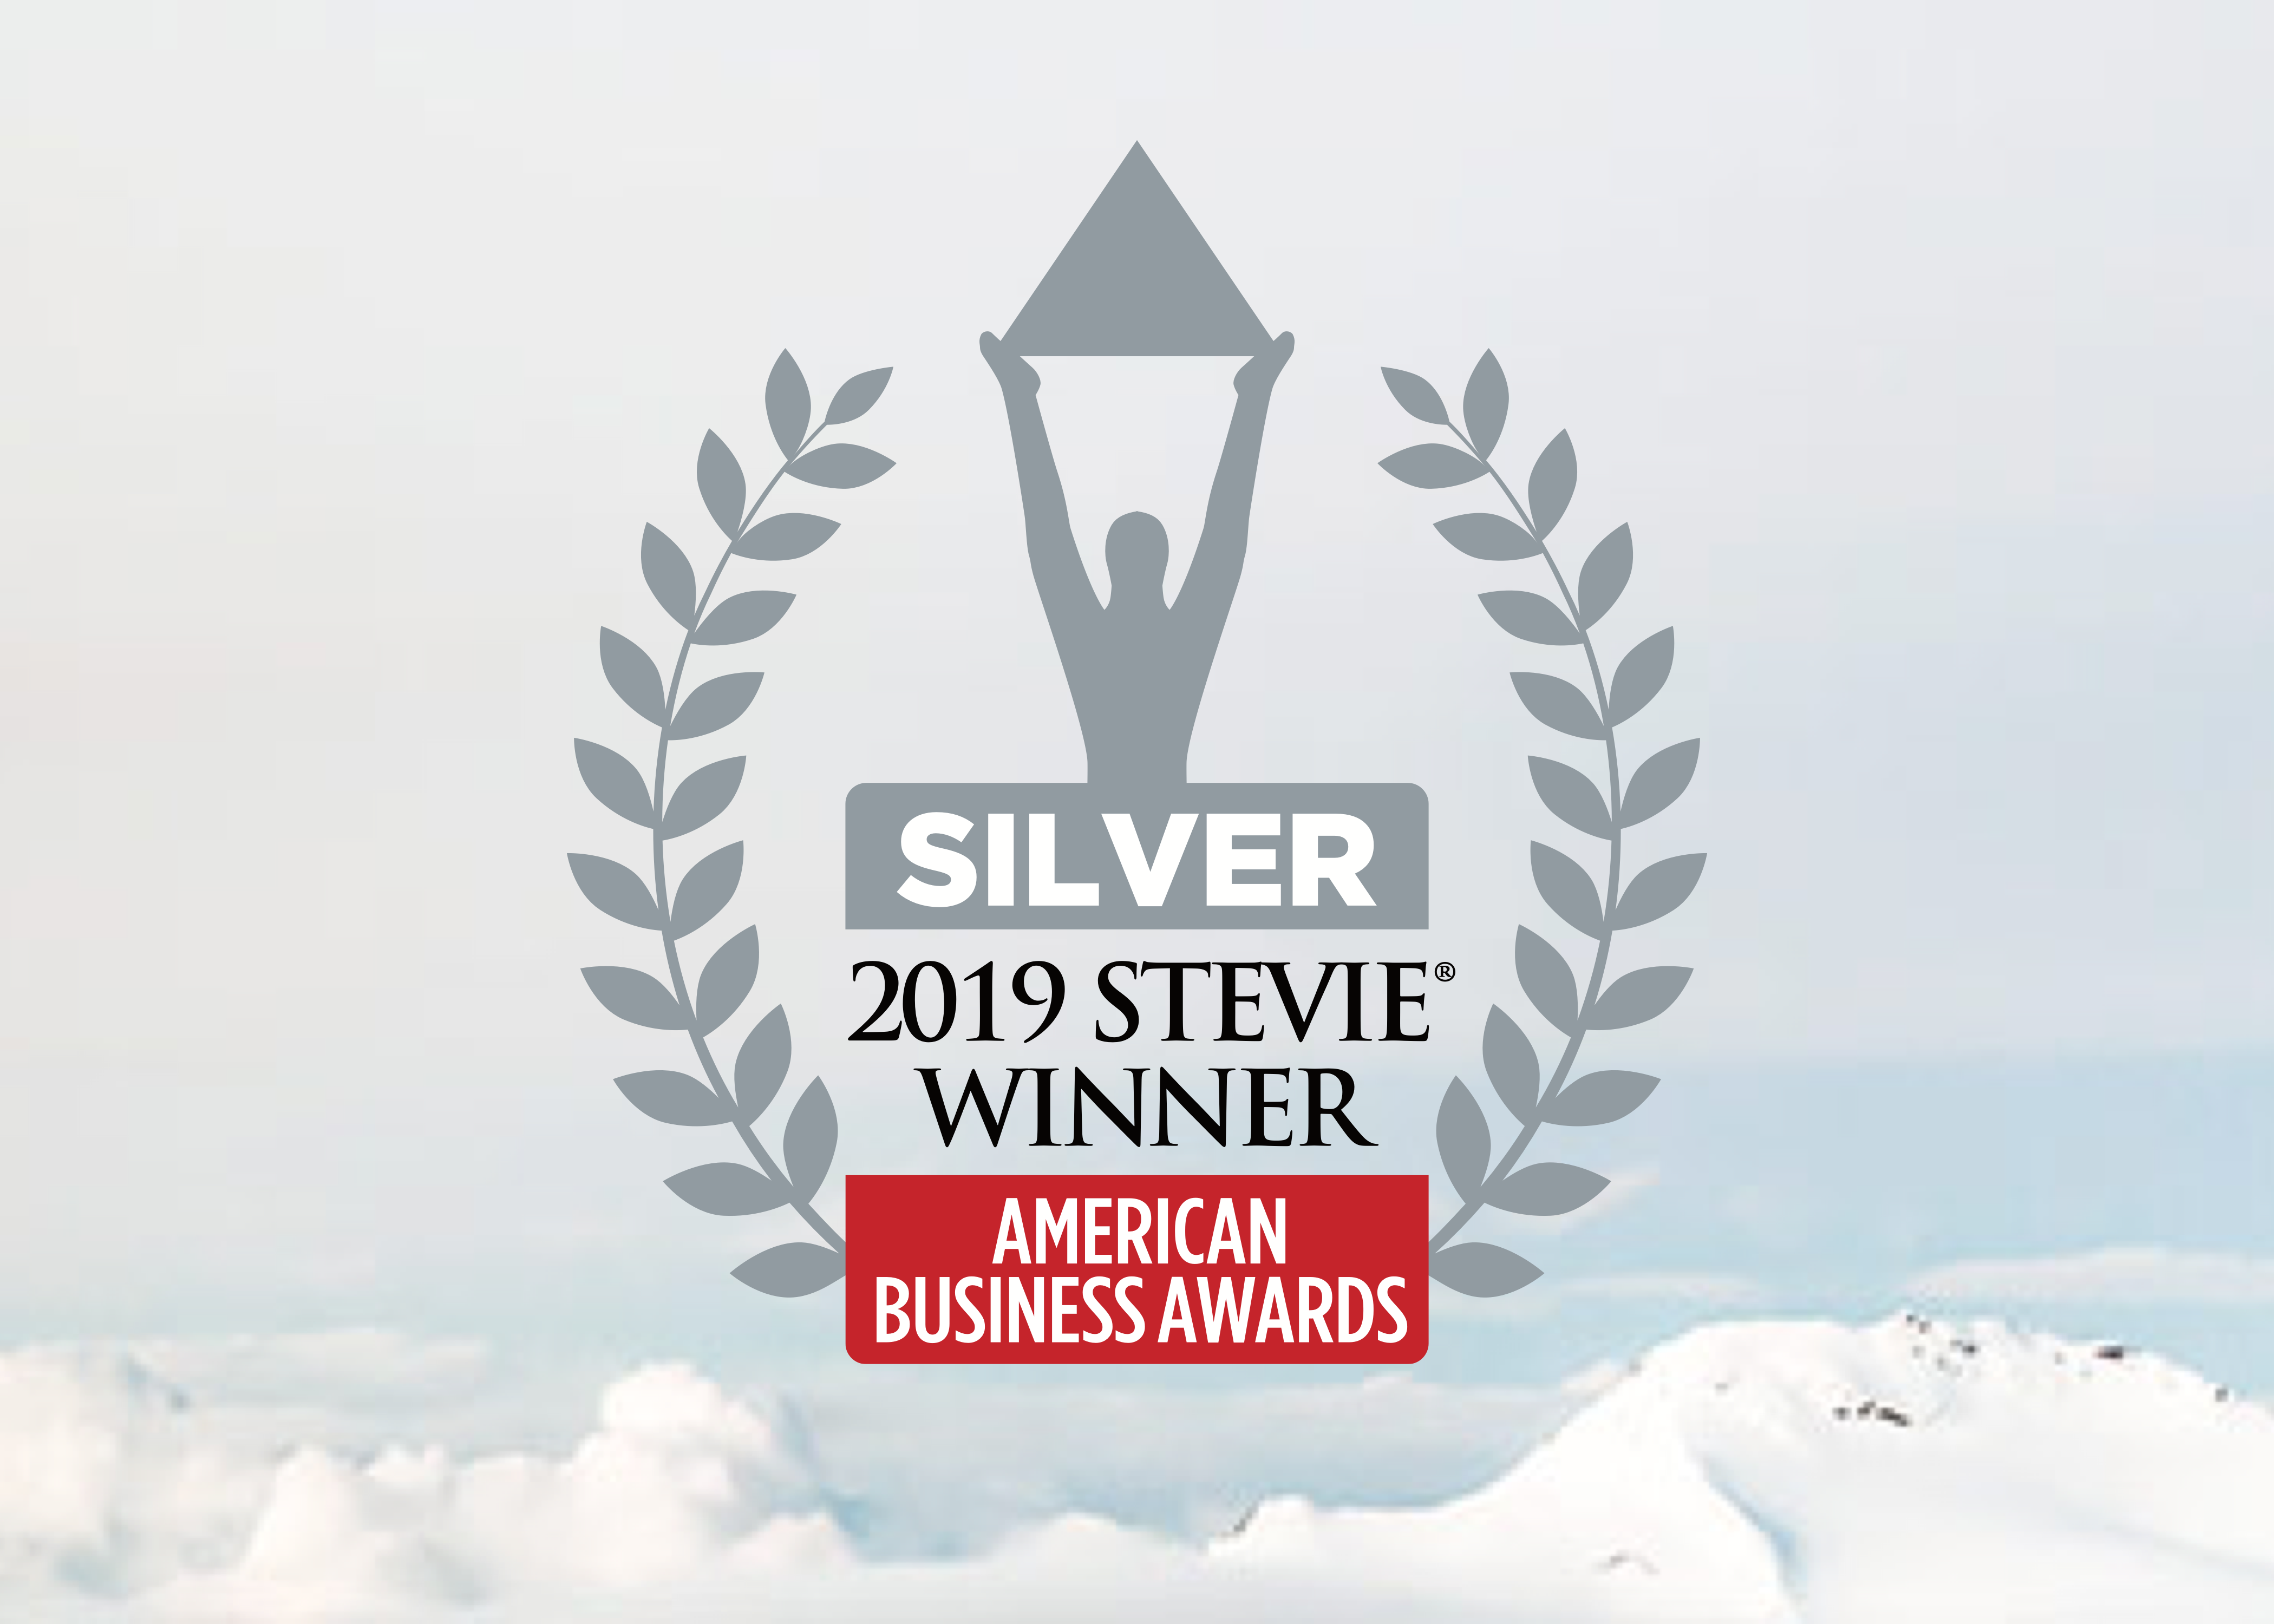 Birdeye Honored As Most Innovative Tech Company In 2019 Winning Its Second Stevie Award 1557794267774